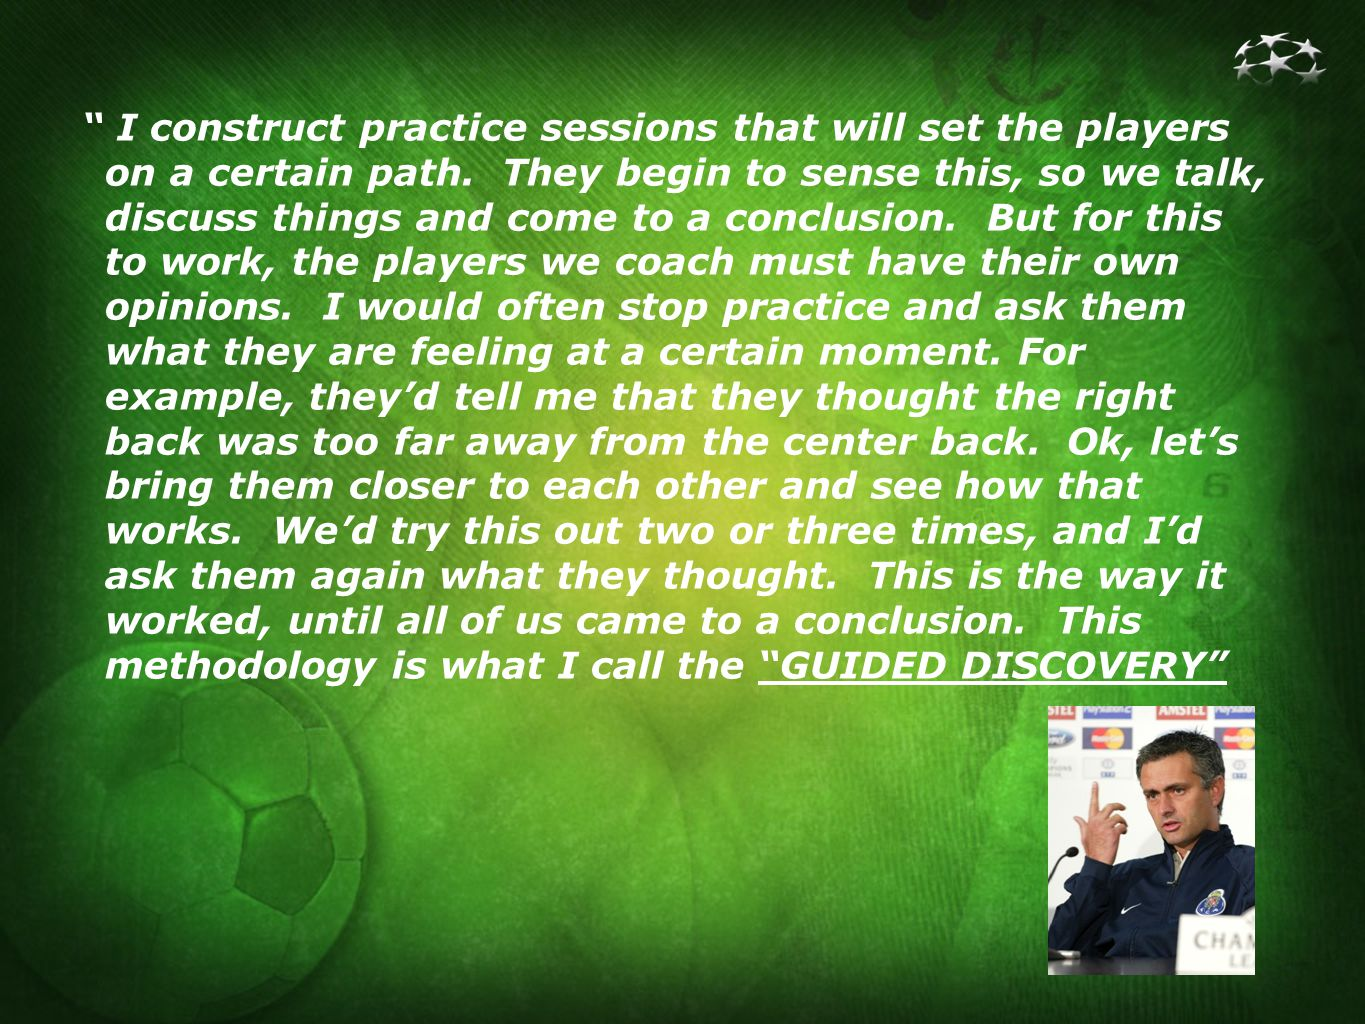 I construct practice sessions that will set the players on a certain path.